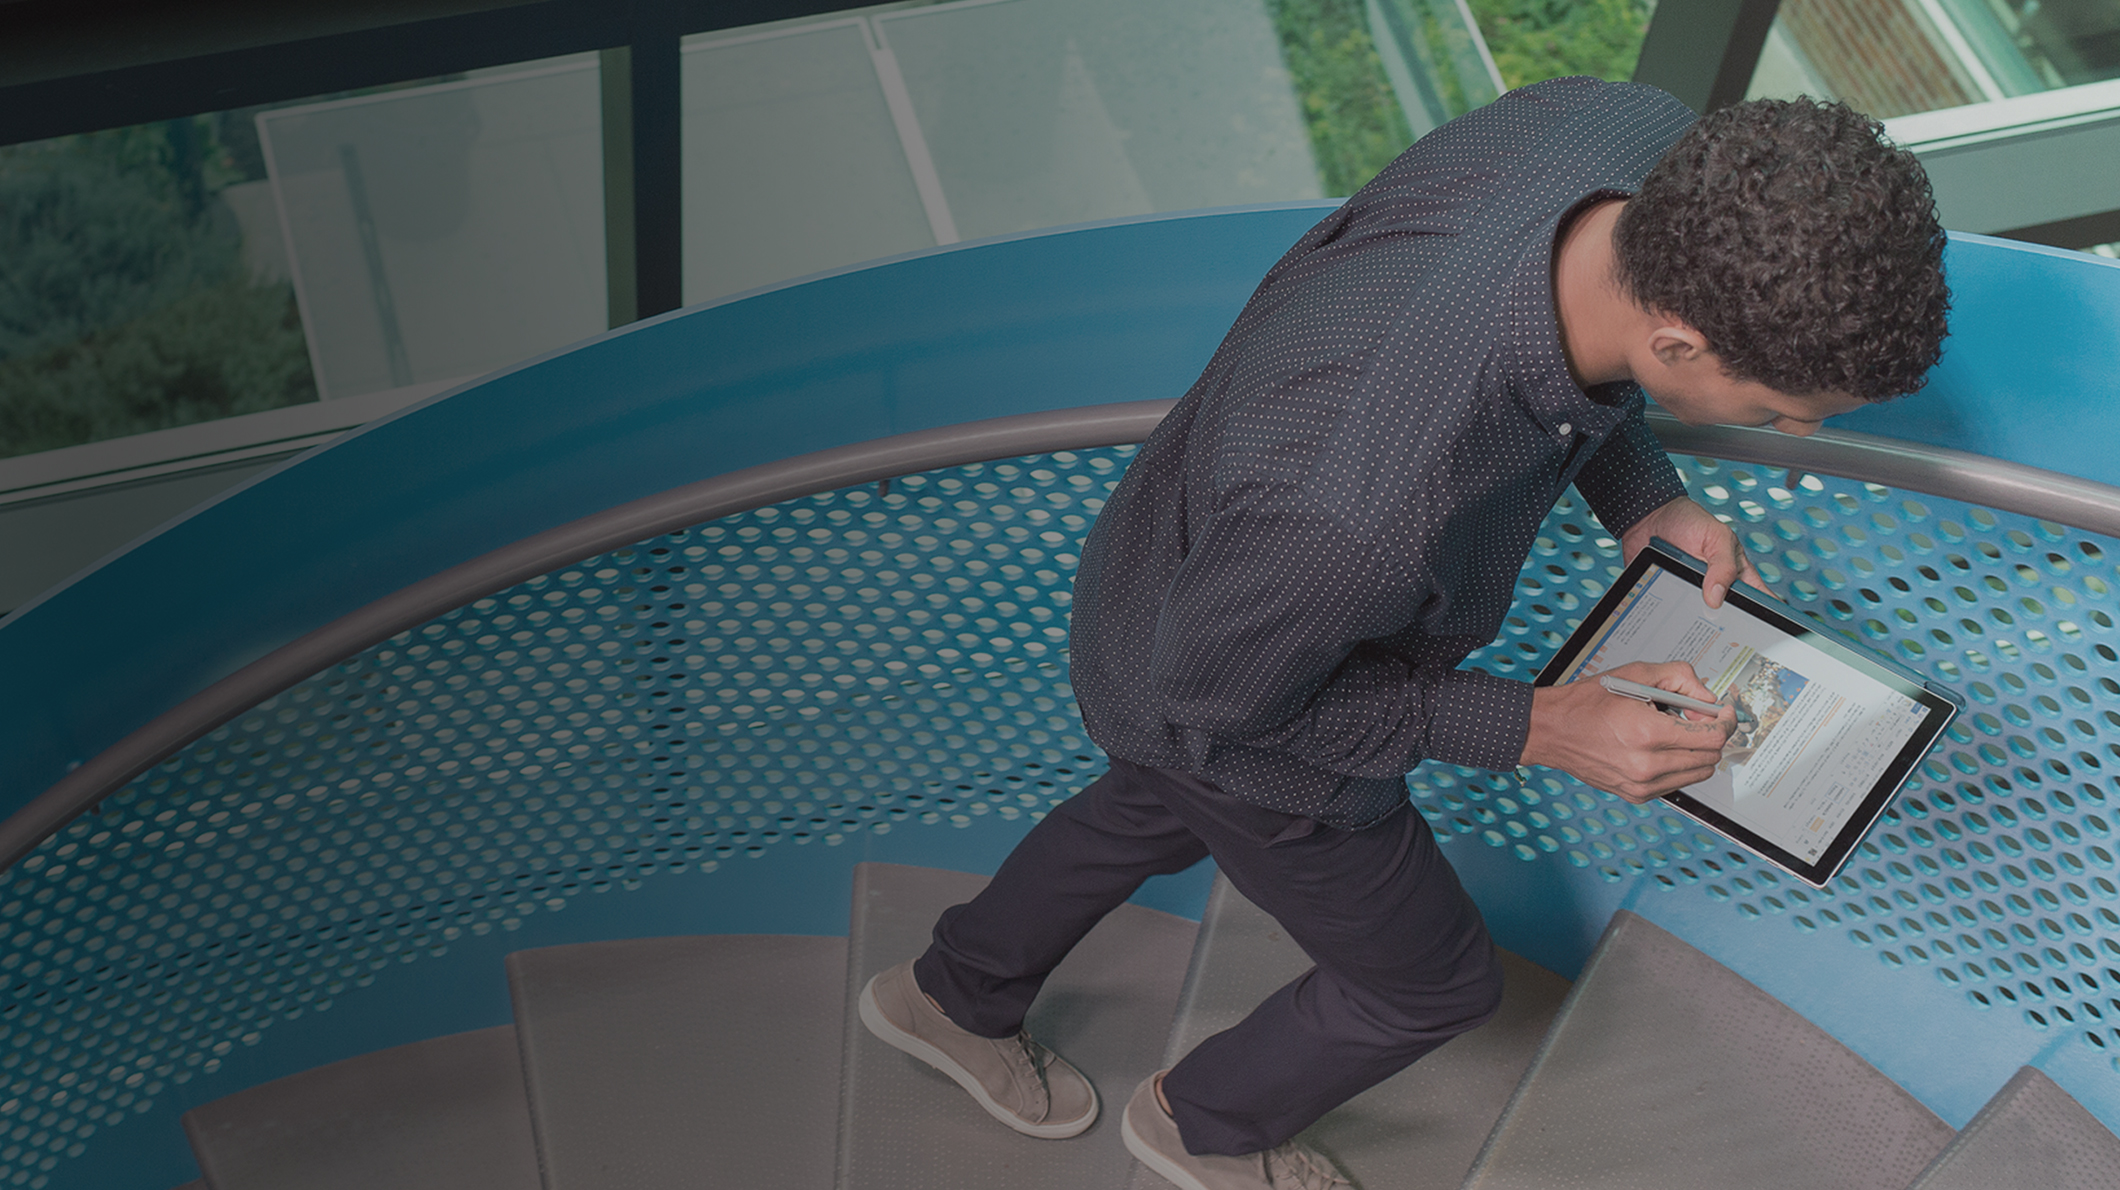 A man works on a tablet while walking up a stairwell